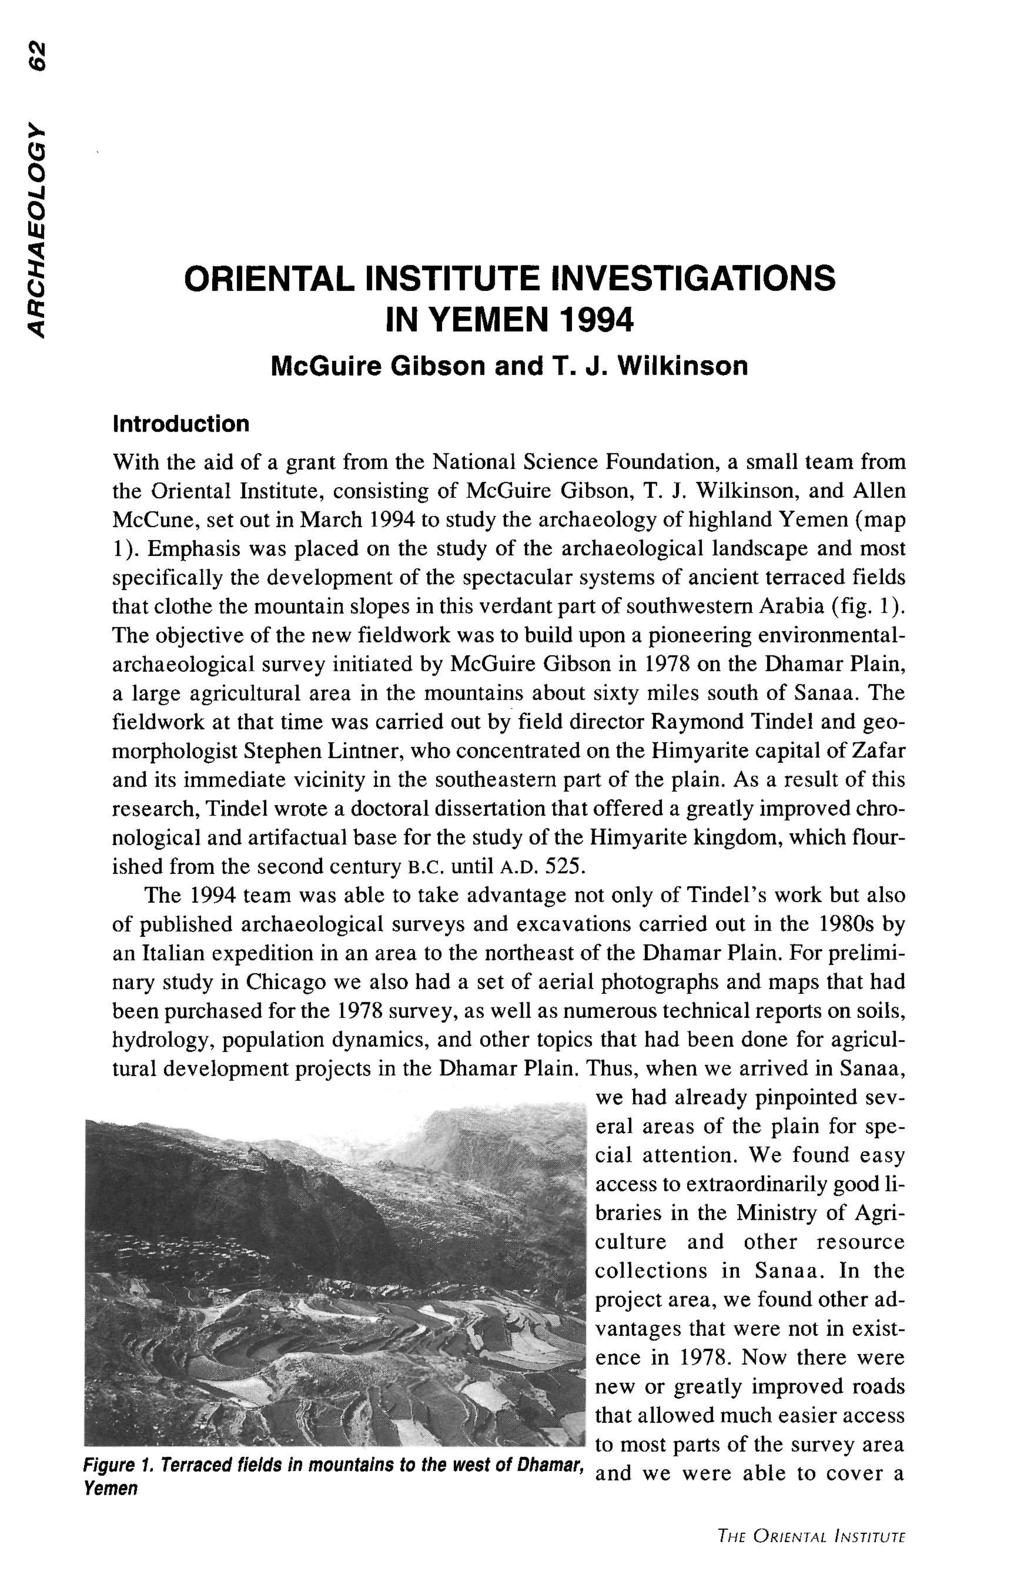 ORIENTAL INSTITUTE INVESTIGATIONS IN YEMEN 1994 Introduction McGuire Gibson and T. J.